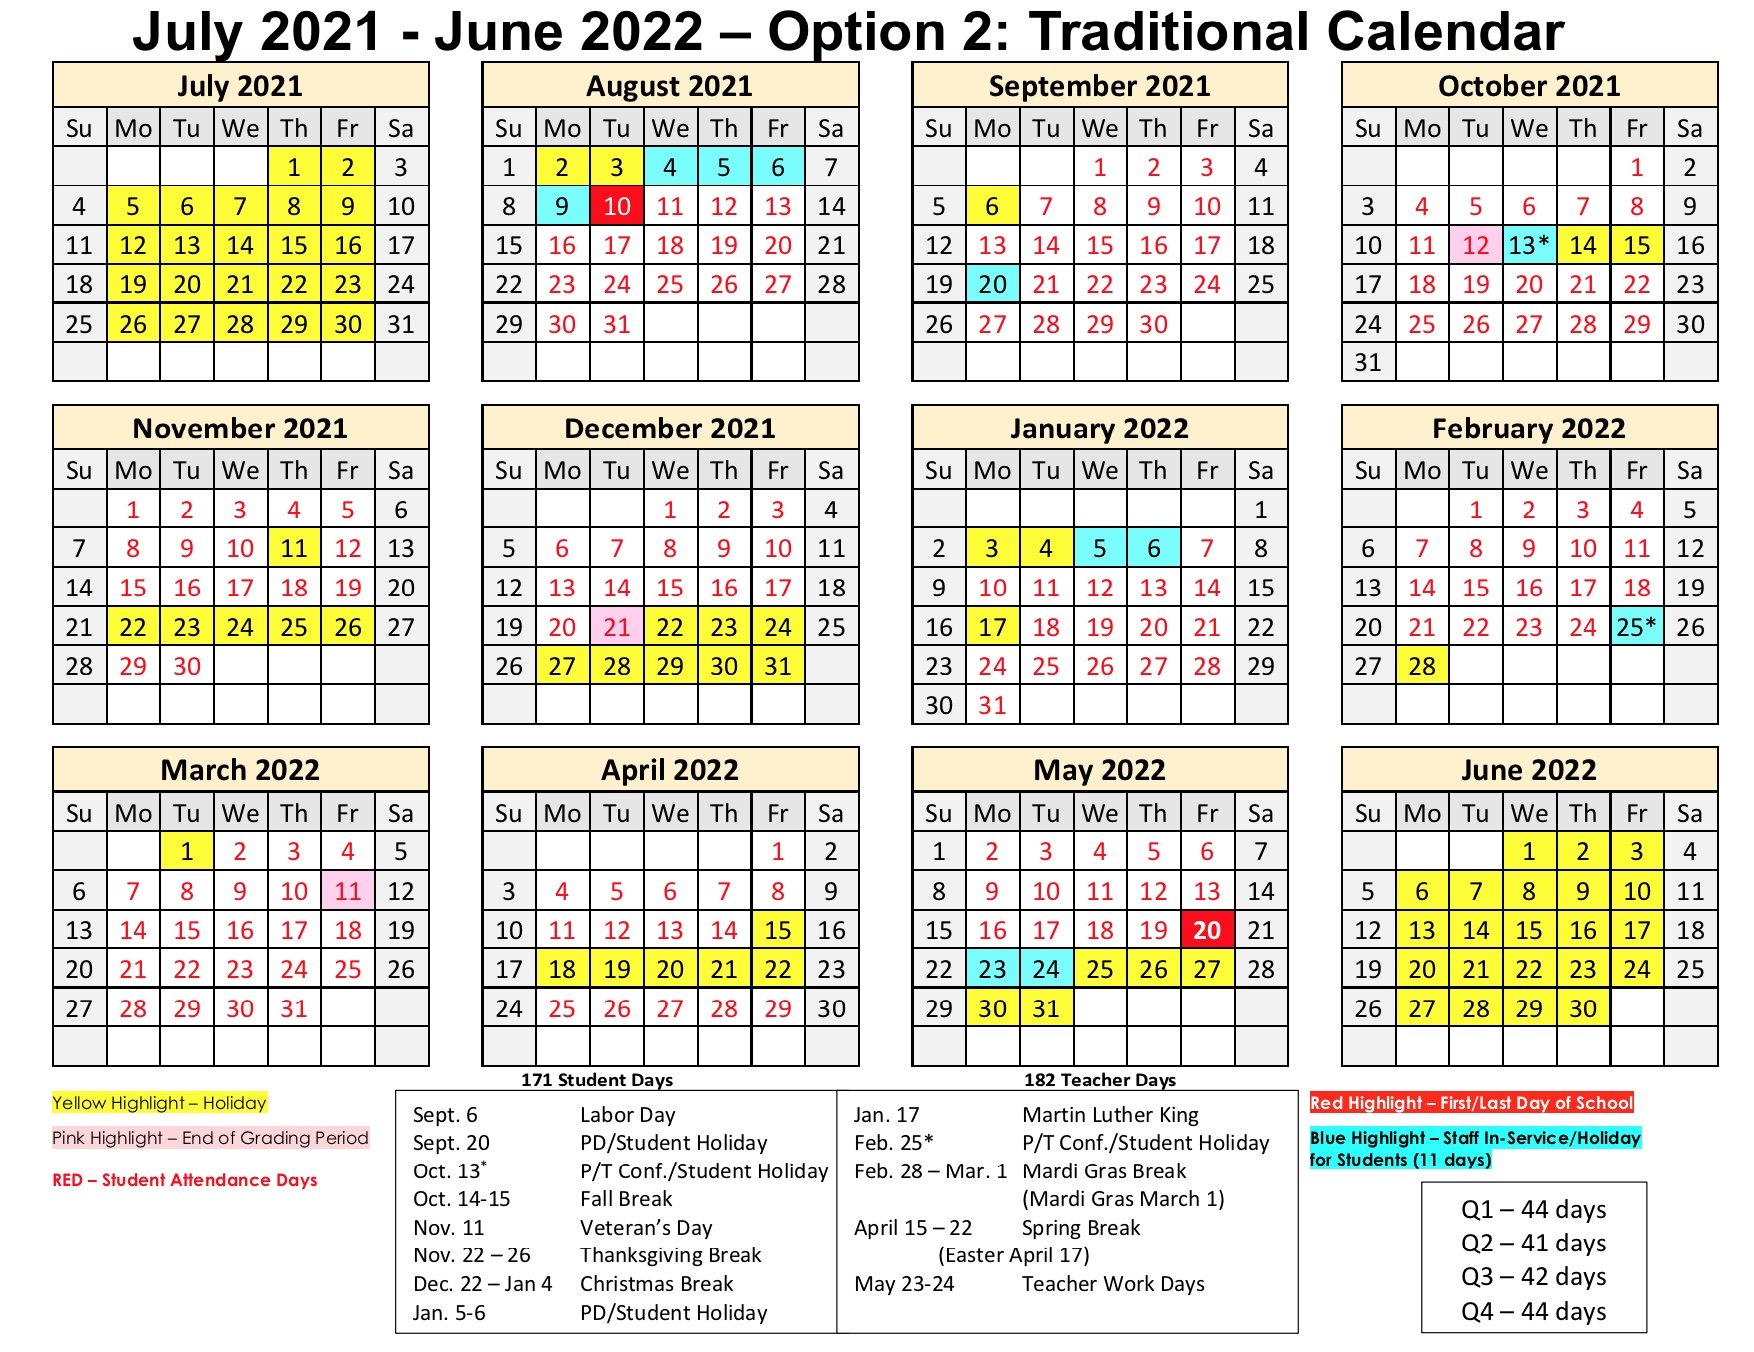 "<div style=""text-align: center;""><span style=""font-size: 18pt;"">Option 2: Traditional Calendar <br> To download click <a href=""https://tinyurl.com/RPSBTraditionalCalendar"" rel=""nofollow"" target=""_blank"">https://tinyurl.com/RPSBTraditionalCalendar</a></span></div>"